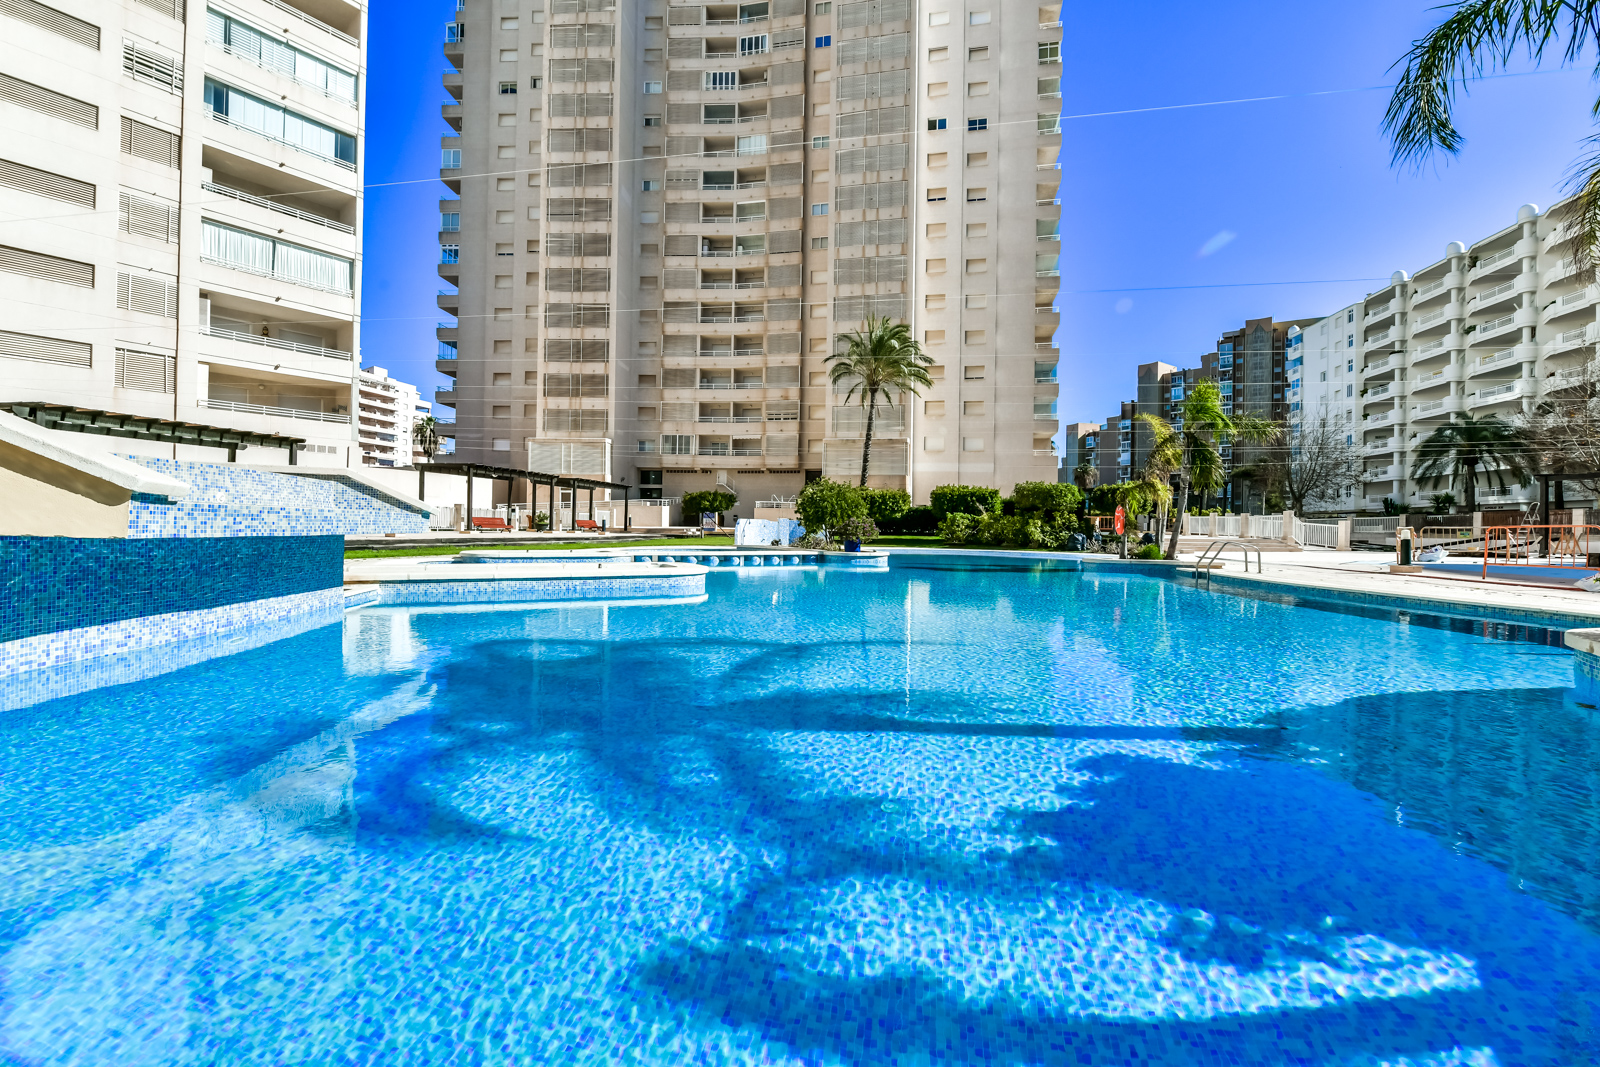 Apartamento Apolo XVI 73, Apartment  with communal pool in Calpe, on the Costa Blanca, Spain for 4 persons.....